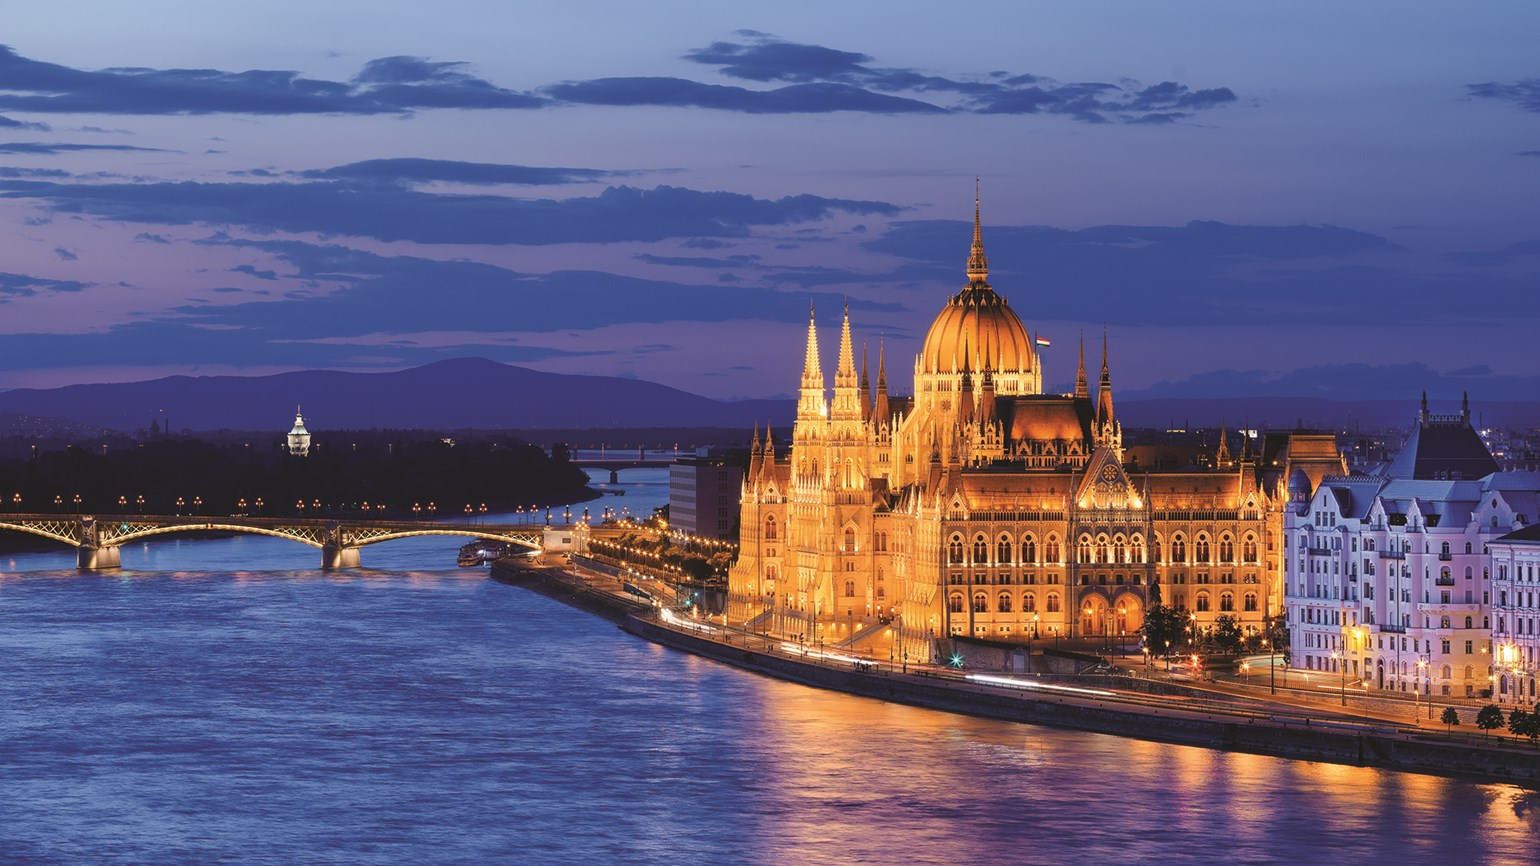 Central Europe river cruise, from $630